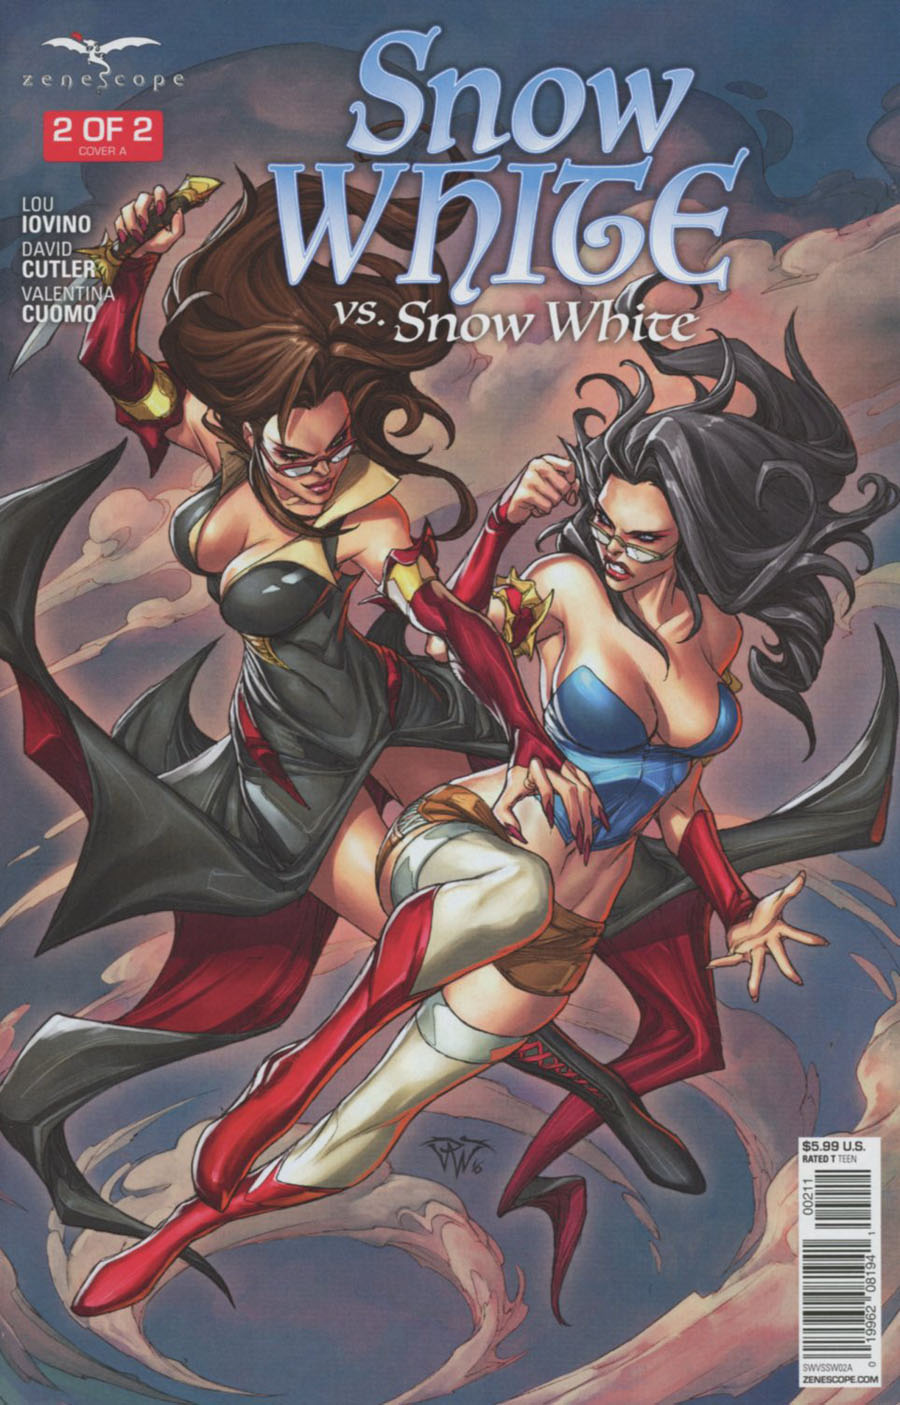 Grimm Fairy Tales Presents Snow White vs Snow White #2 Cover A Paolo Pantalena